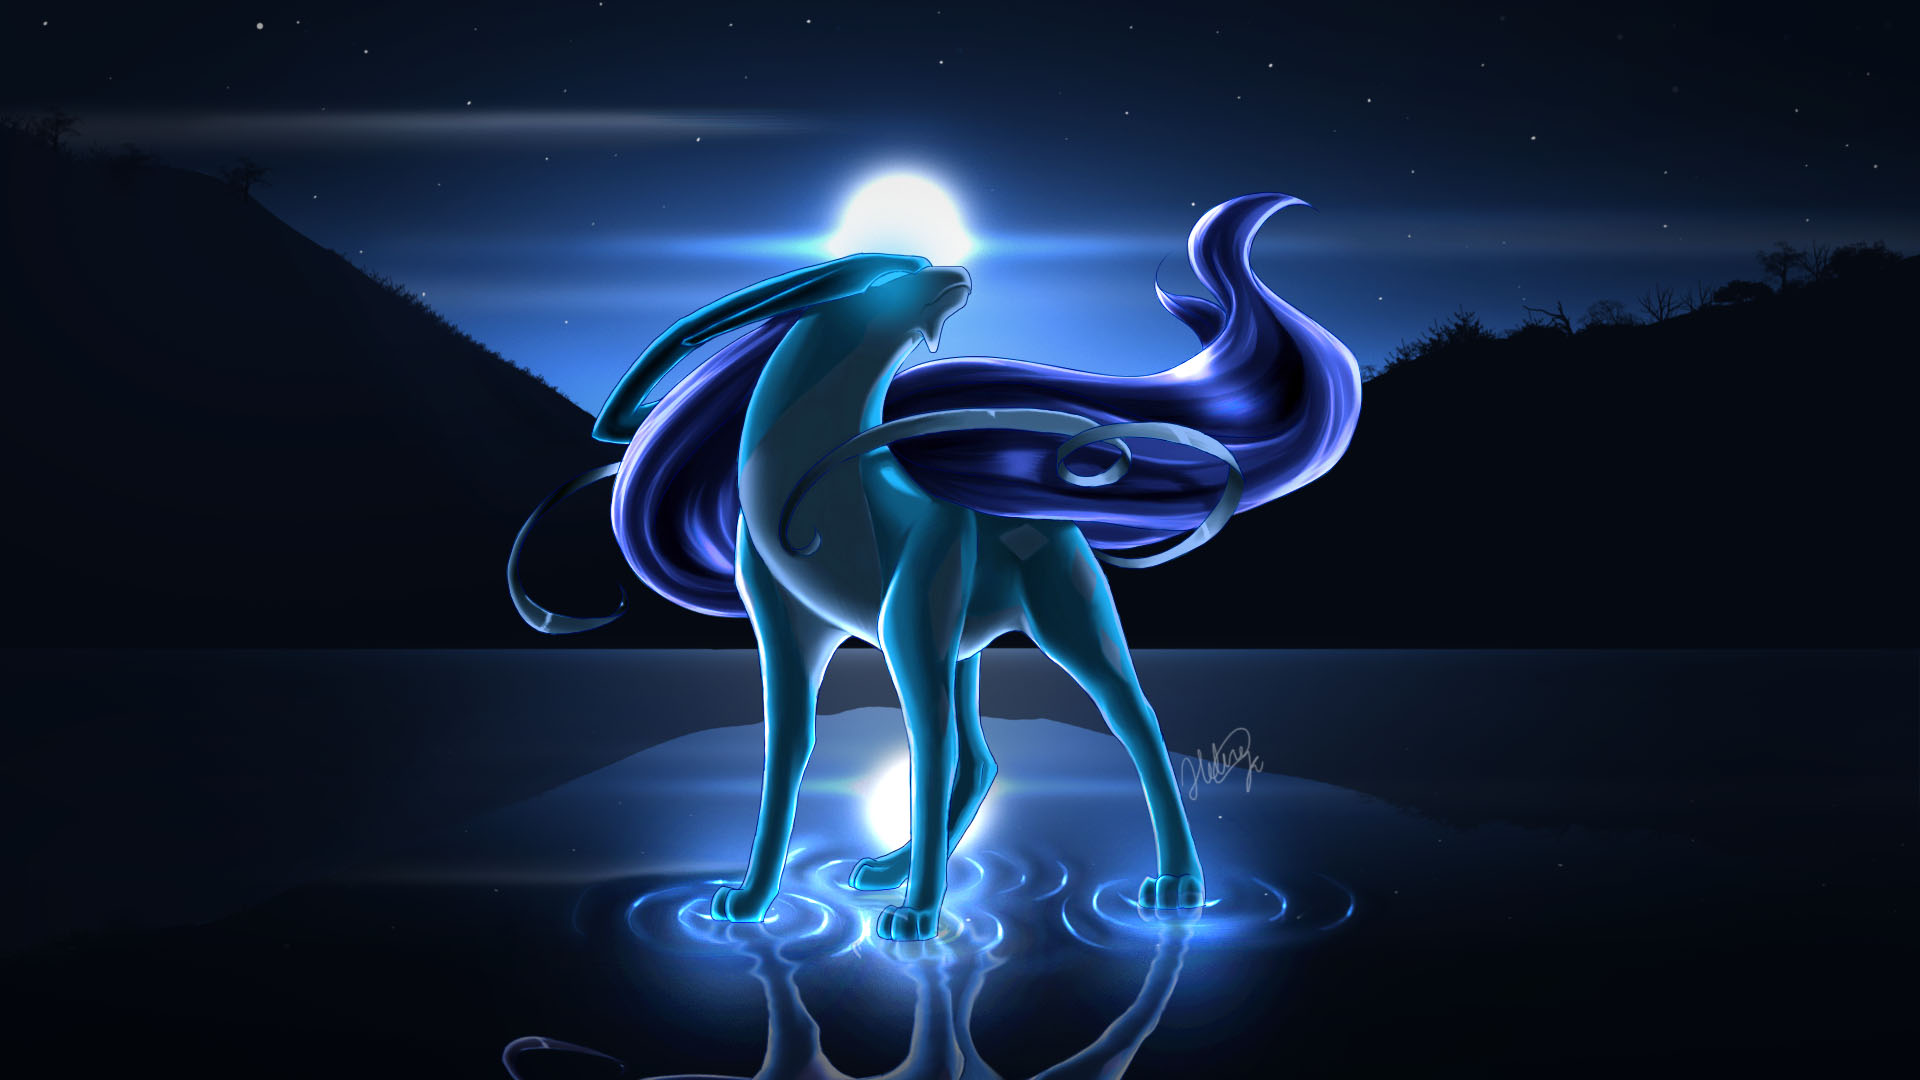 suicune pokemon hd wallpapers - photo #11